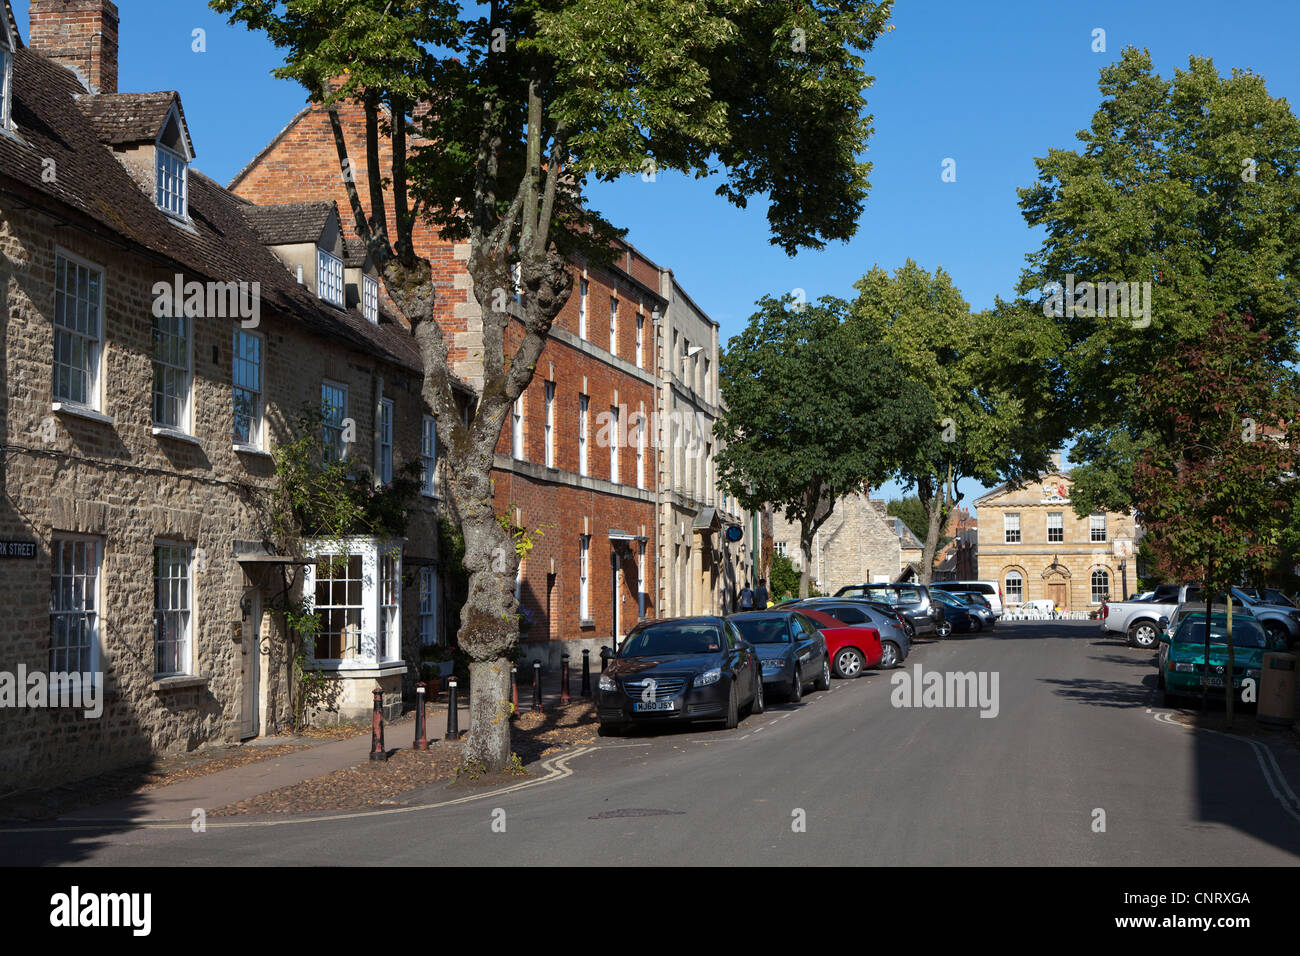 Main street with the town hall at the end, Woodstock, Oxfordshire, UK - Stock Image